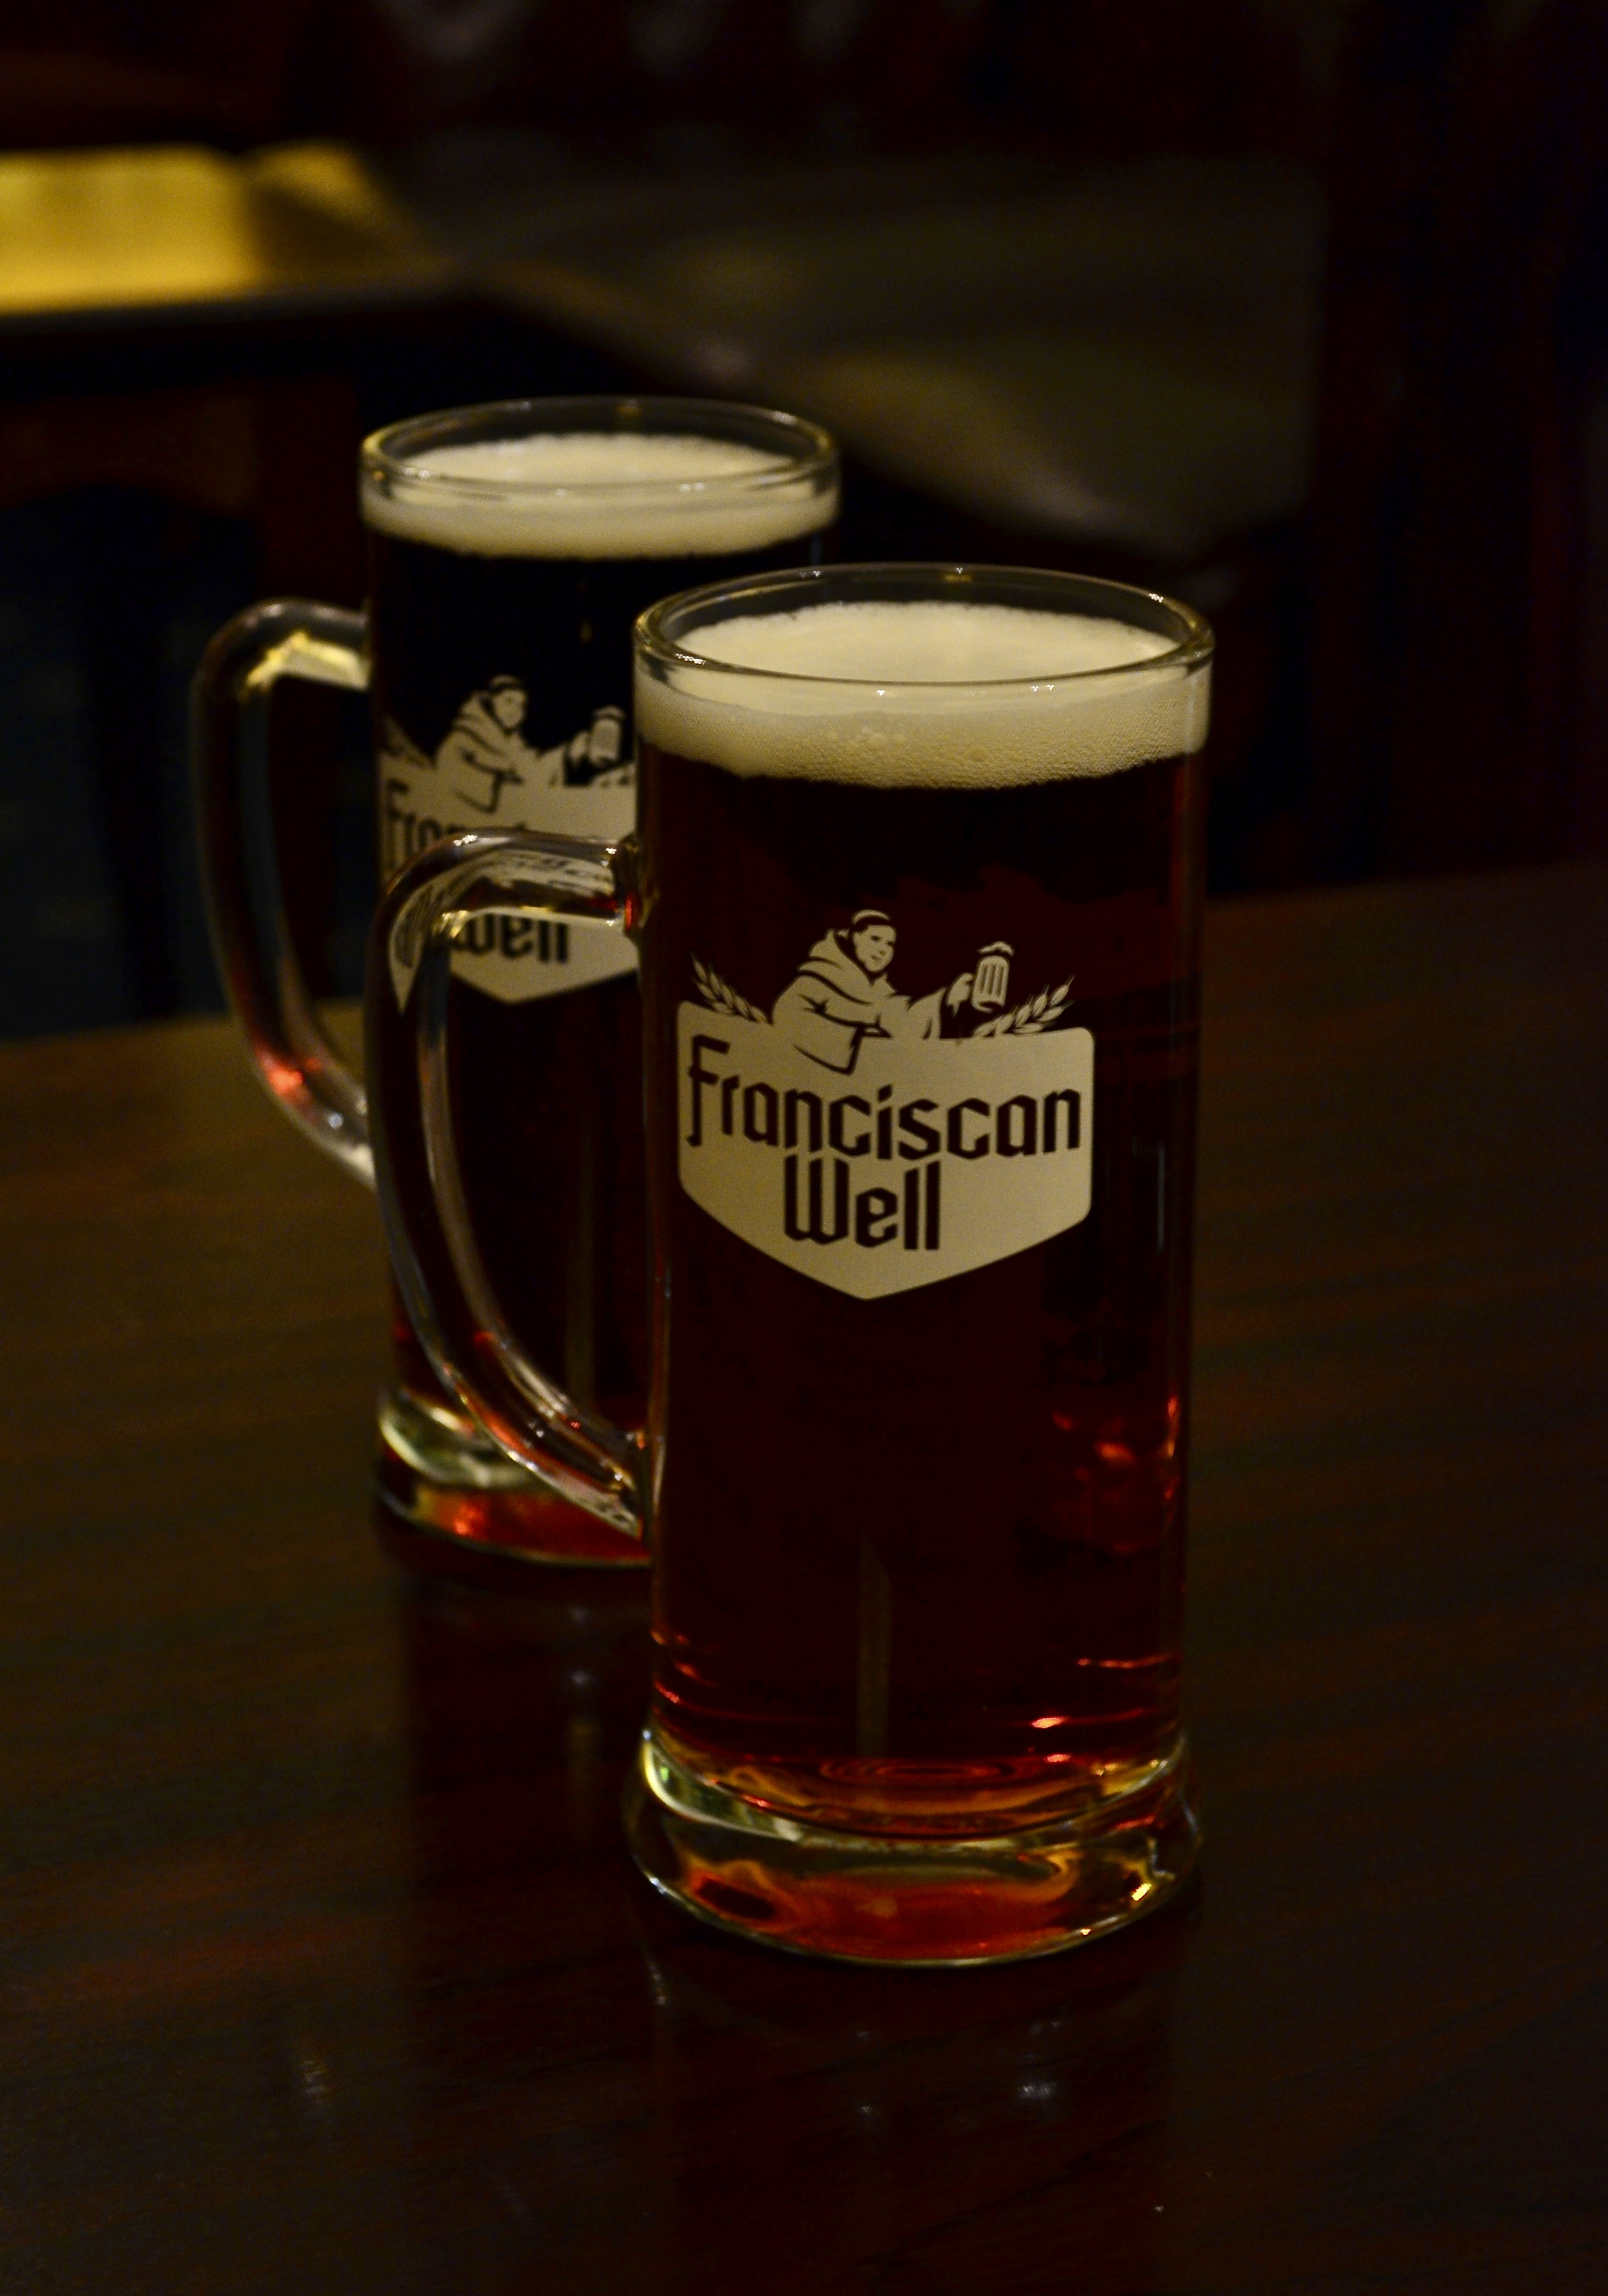 franciscan well brewery, franciscan well cork, local craft beer cork, craft brewery Cork, franciscan well pint cork,